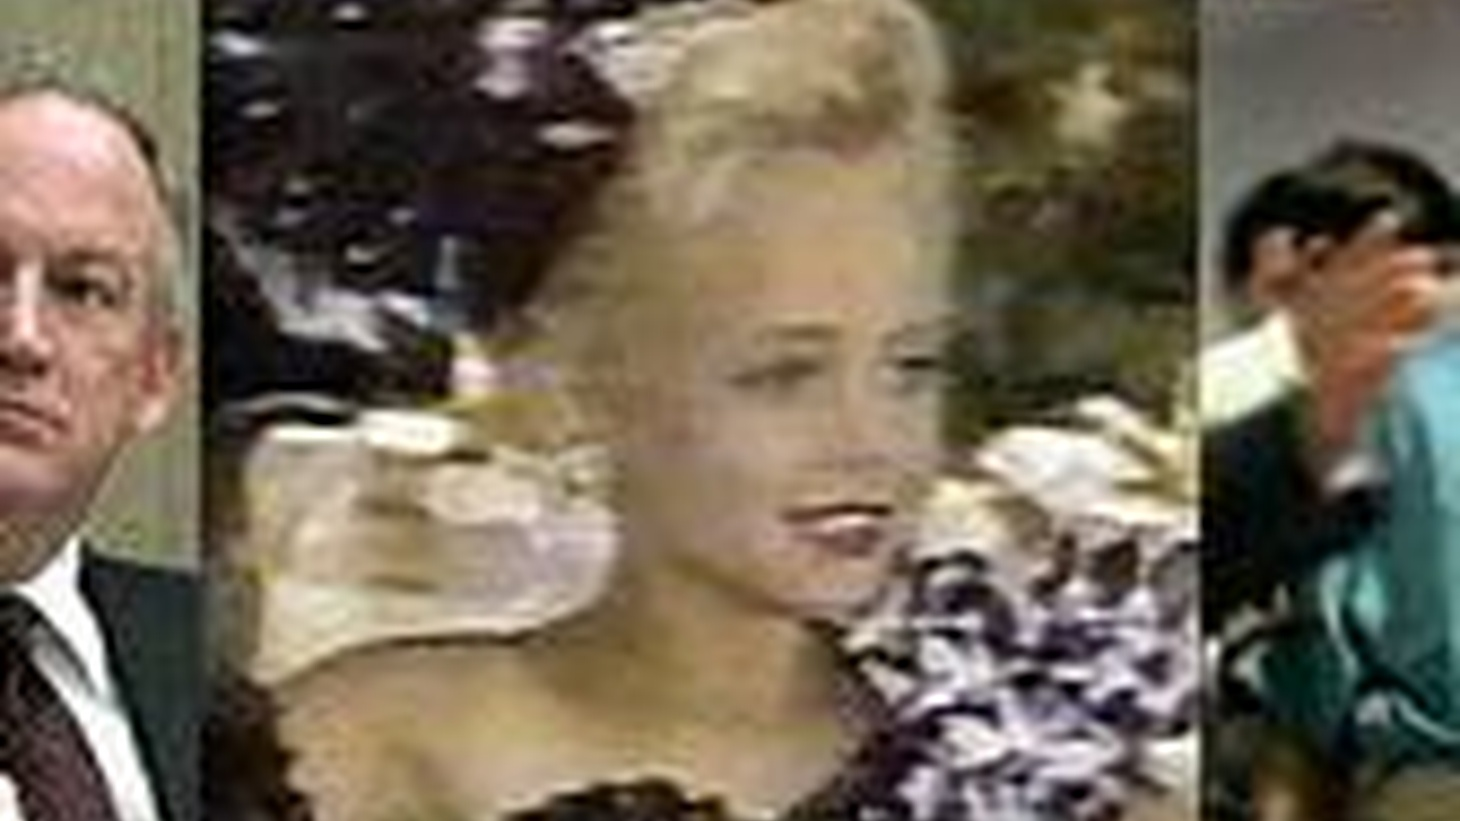 Unless you've been living under a rock lately, with no access to the frothing tempest of cable news, you're aware that TV's talking heads are in a lather over the arrest of a guy who claims he had something to do with the death of JonBenét Ramsey...